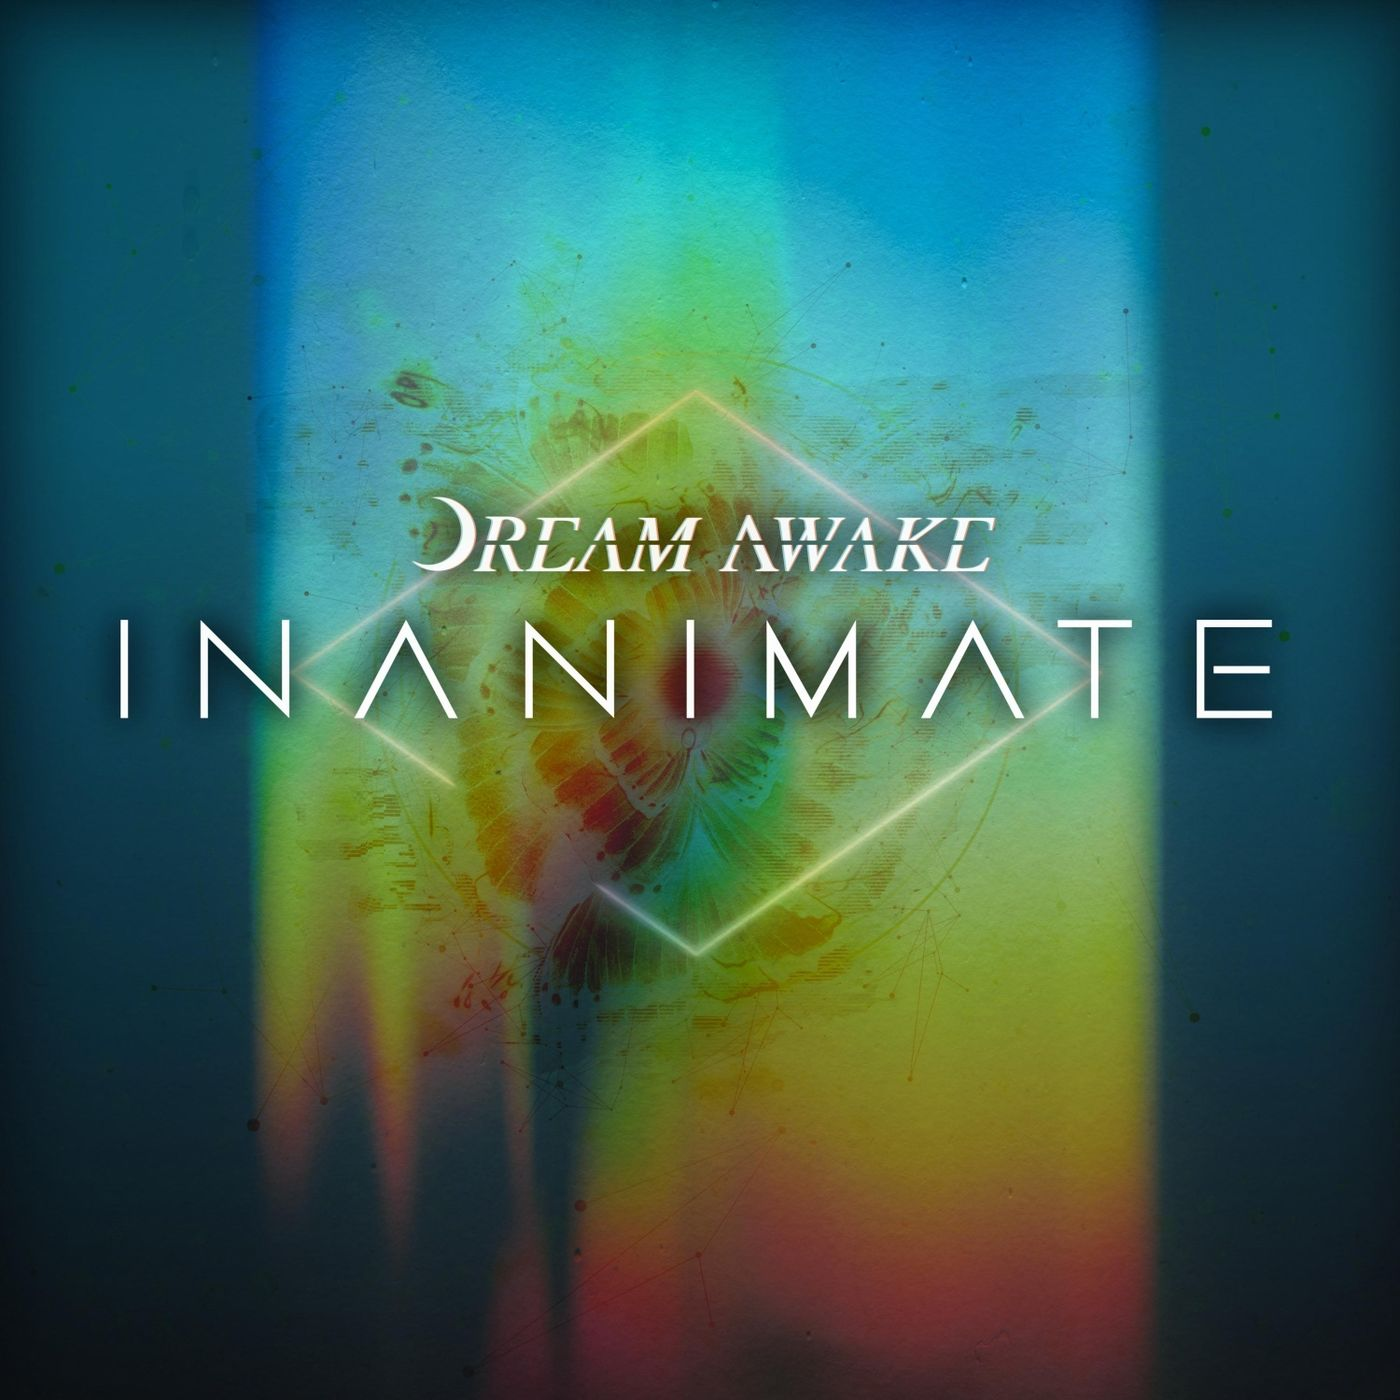 Dream Awake - Inanimate [single] (2020)